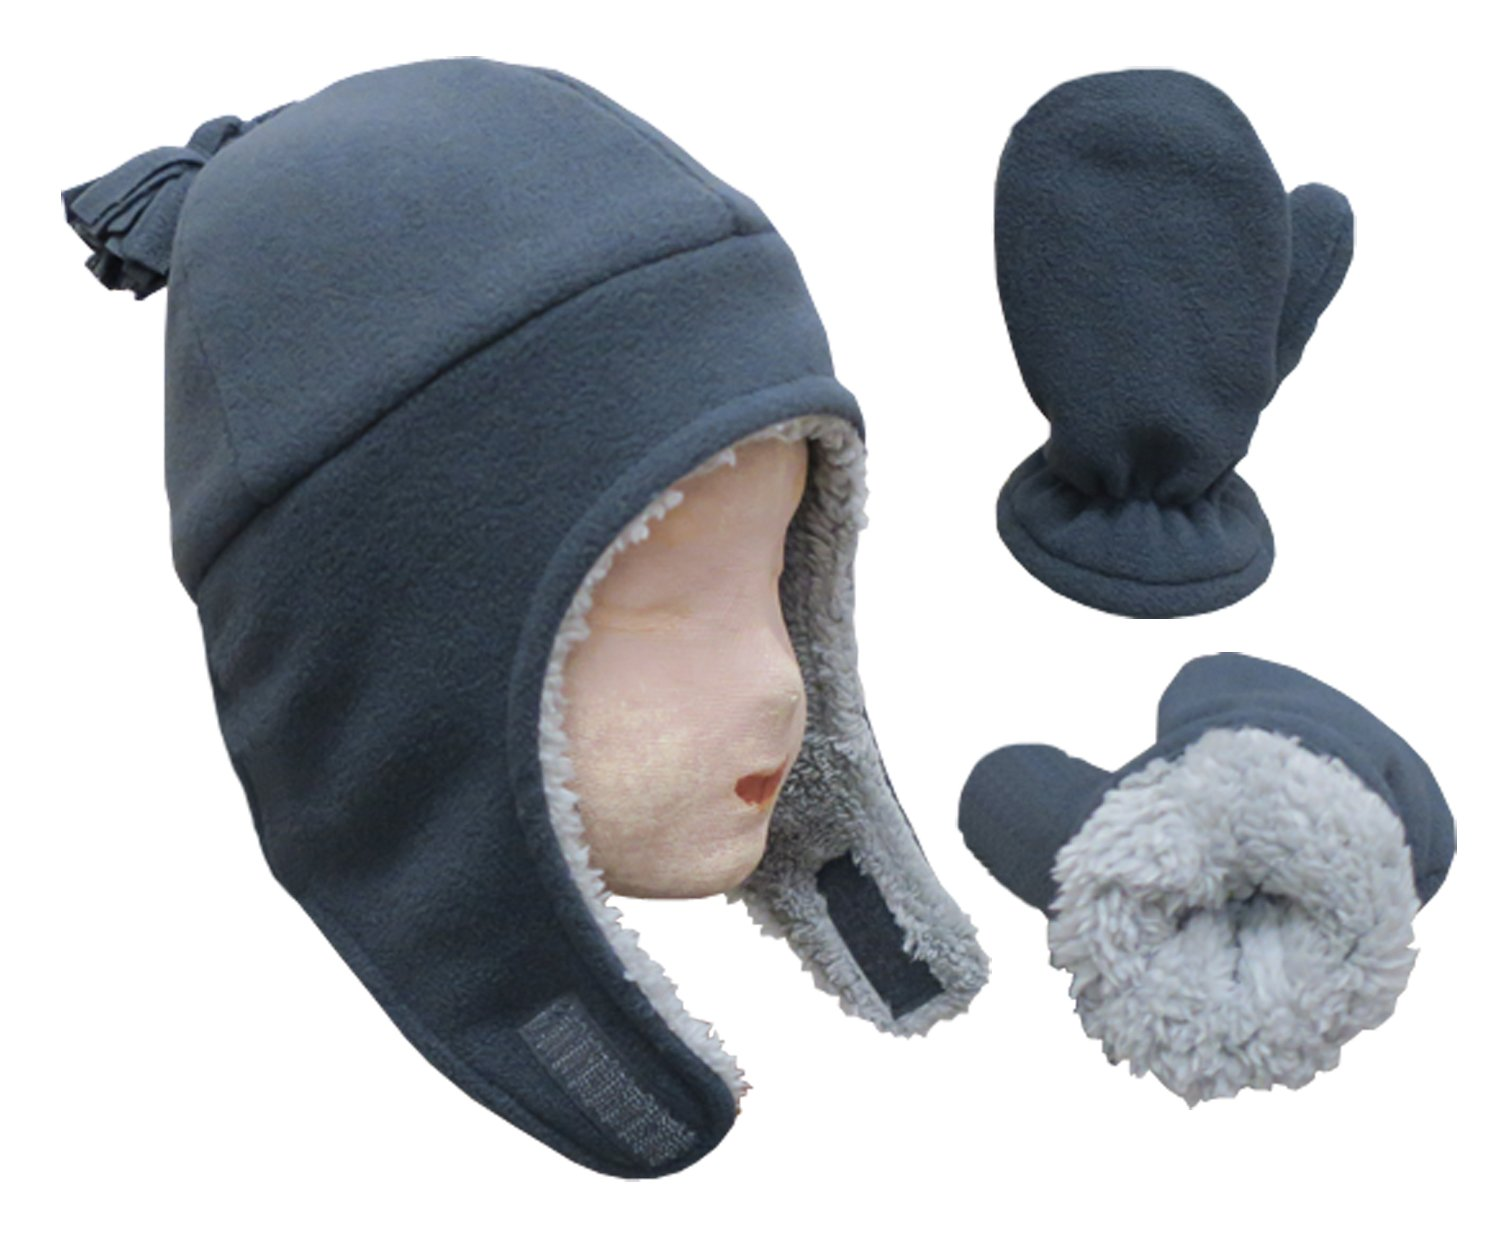 NIce Caps Little Boys and Baby Sherpa Lined Micro Fleece Pilot Hat Mitten  Set 2753- cc024b11a94c